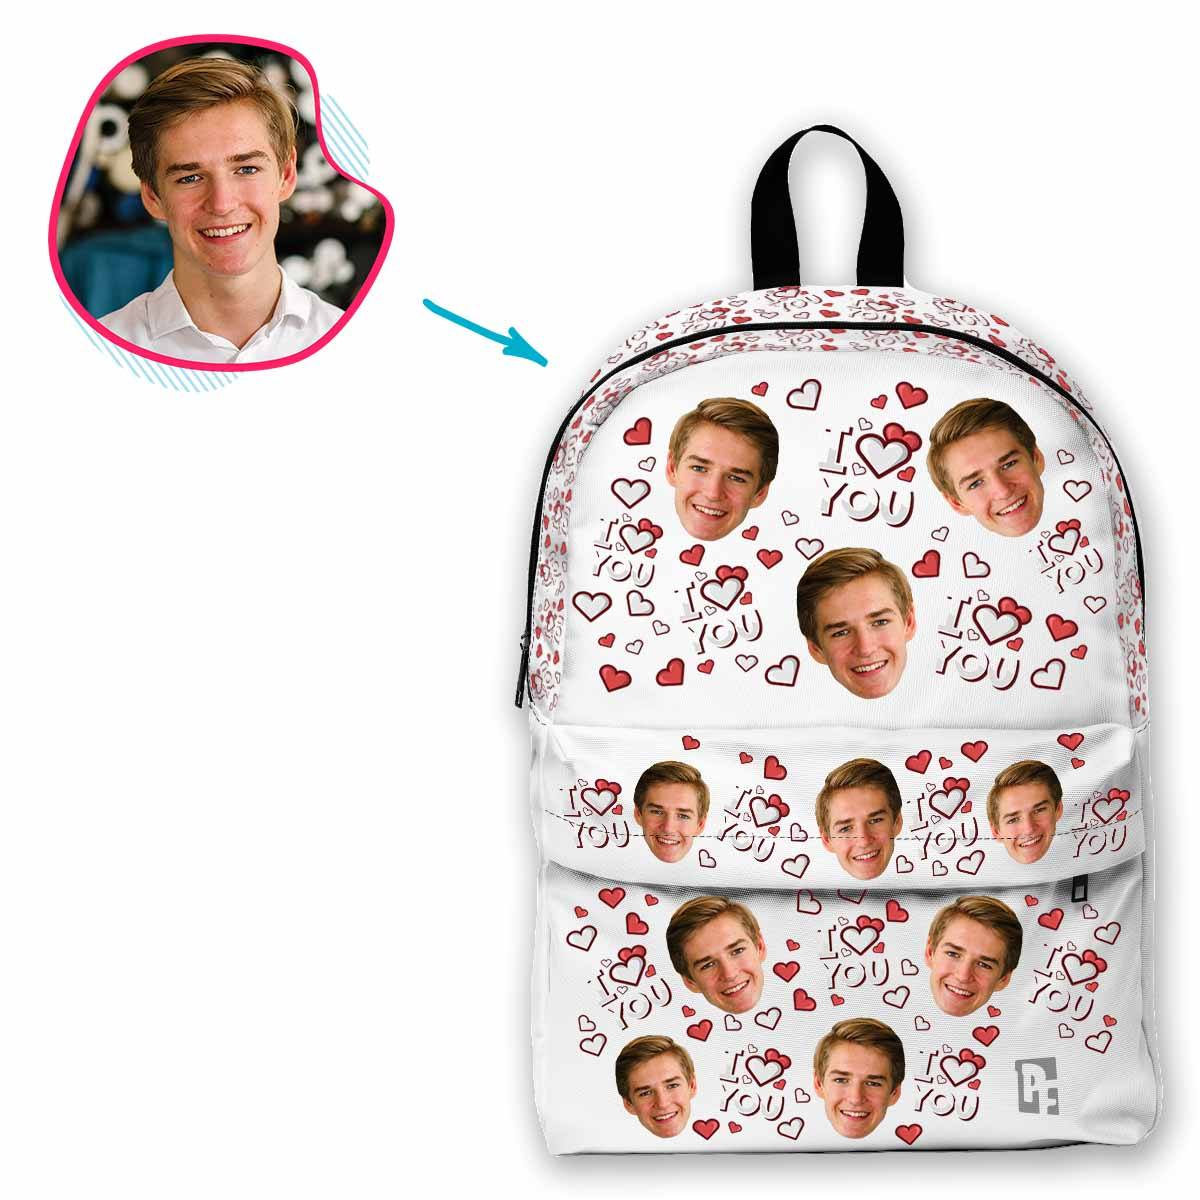 white I Love You classic backpack personalized with photo of face printed on it